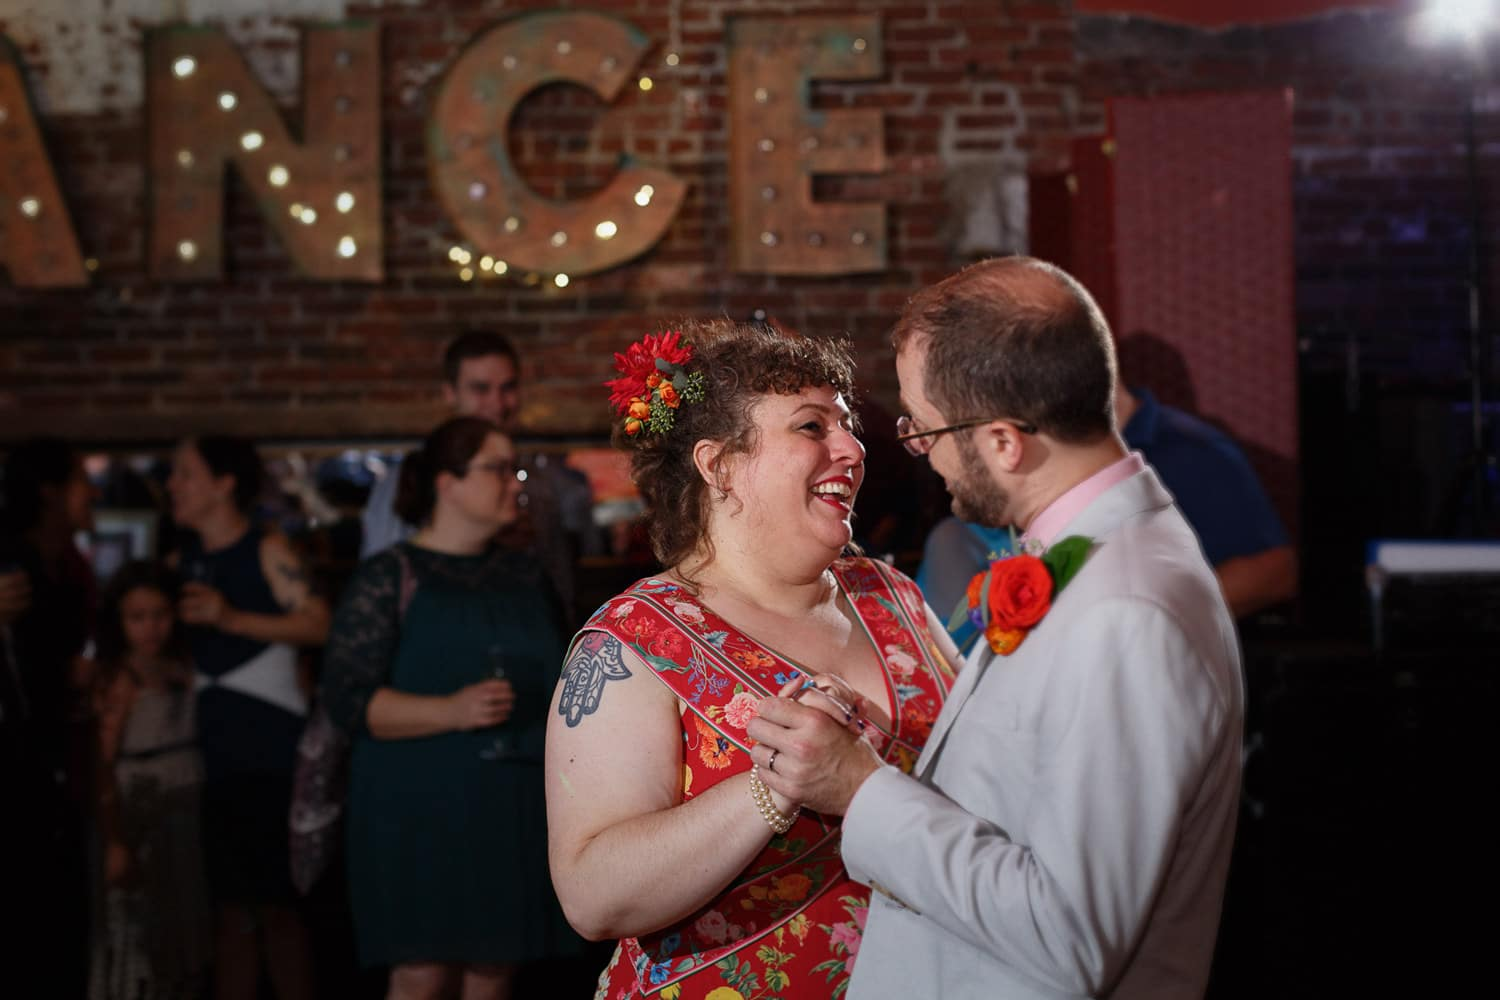 jamaica plain wedding at bella luna red dress first dance